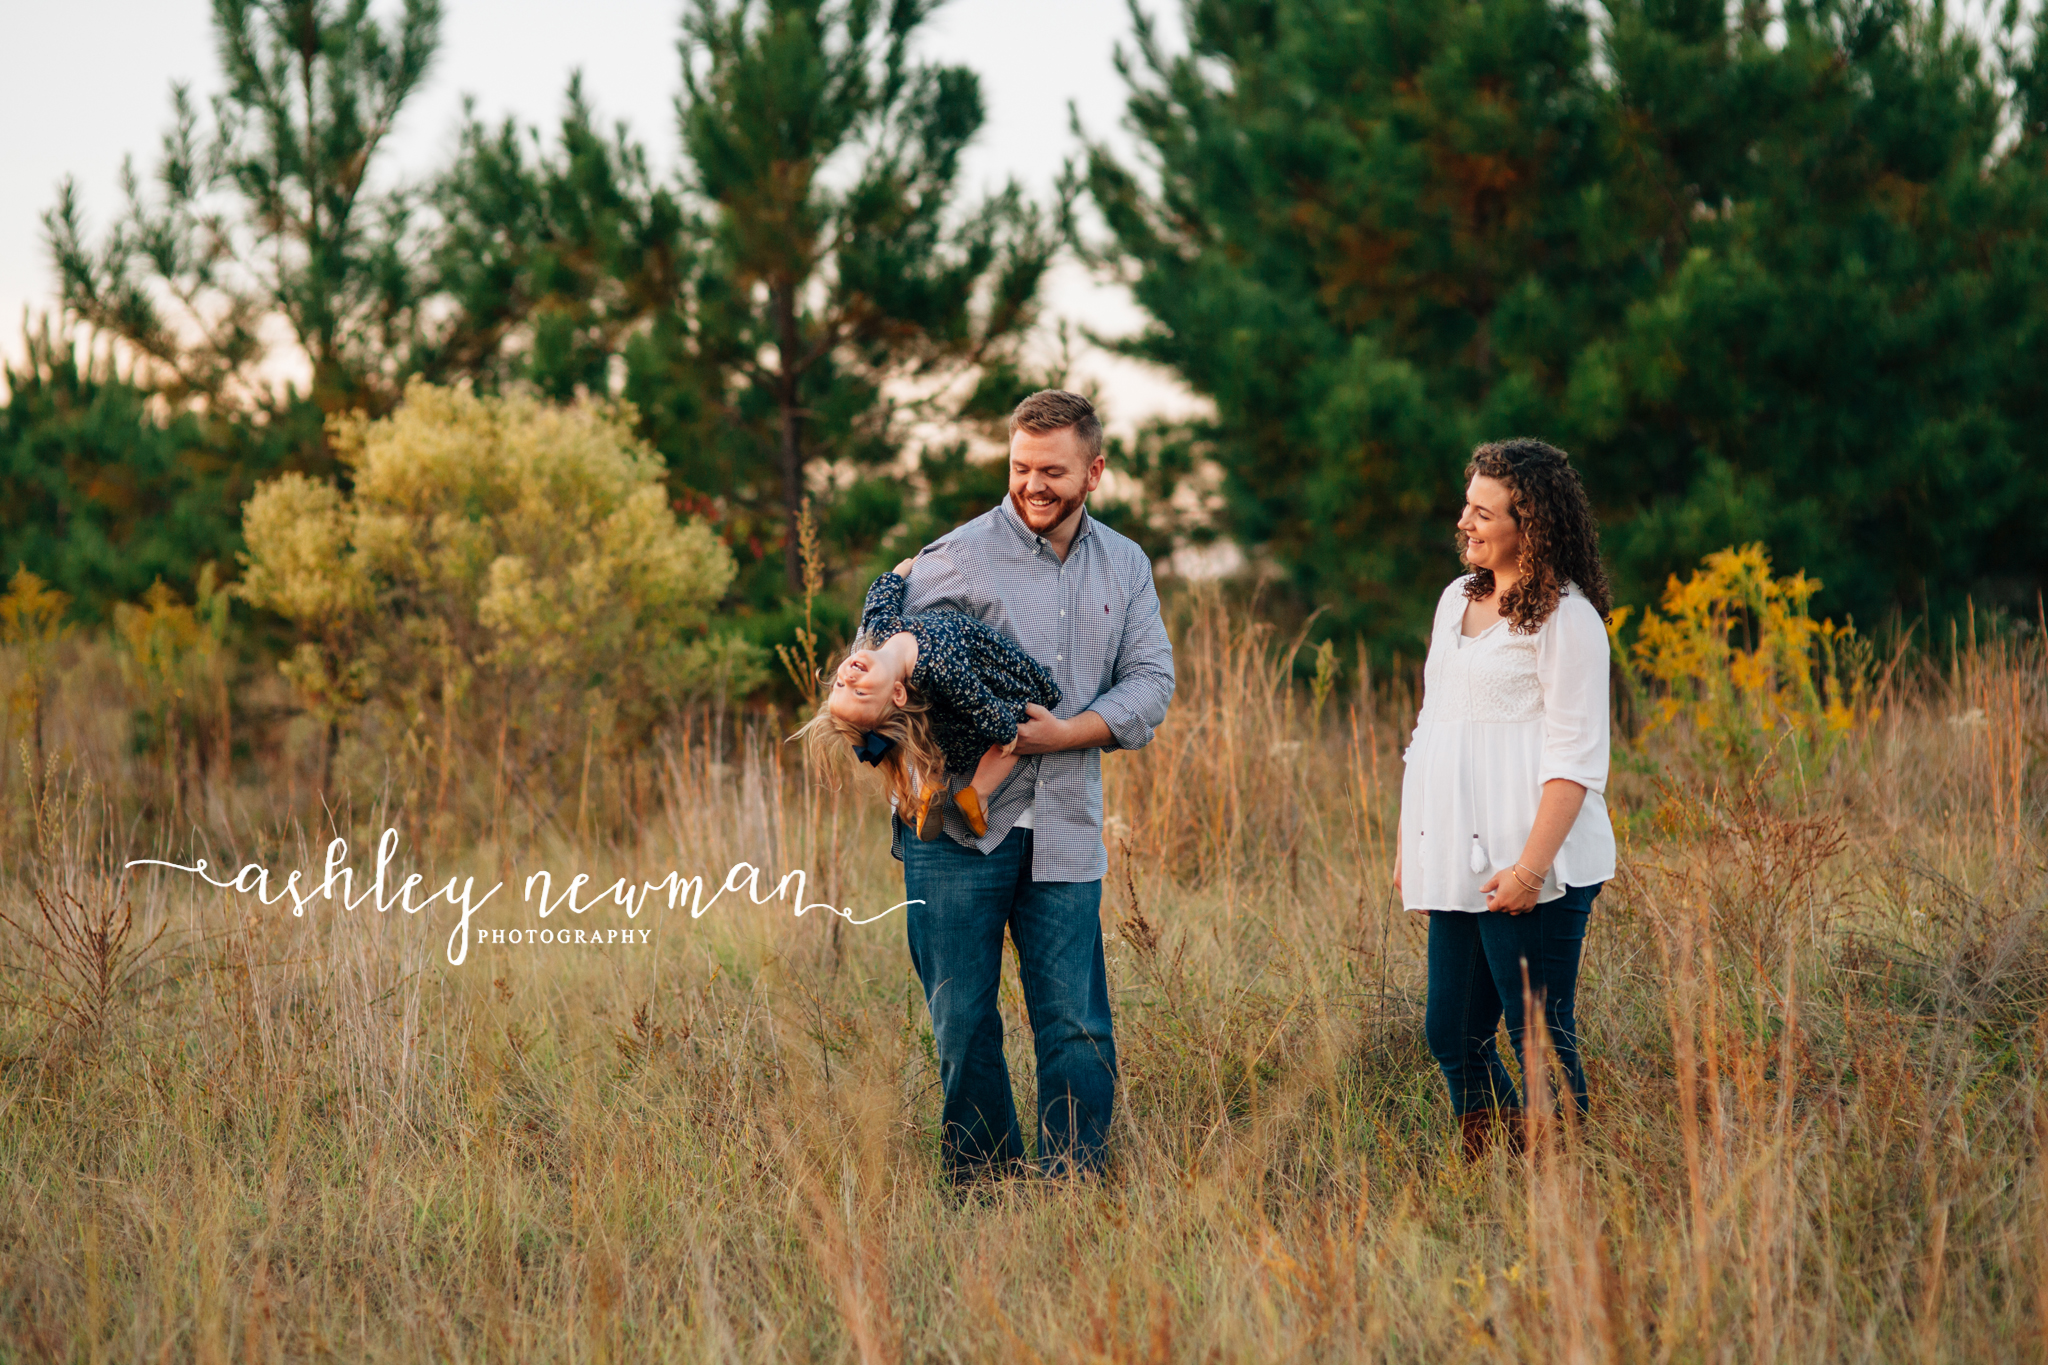 the-woodlands-maternity-photographer-ashley-newman